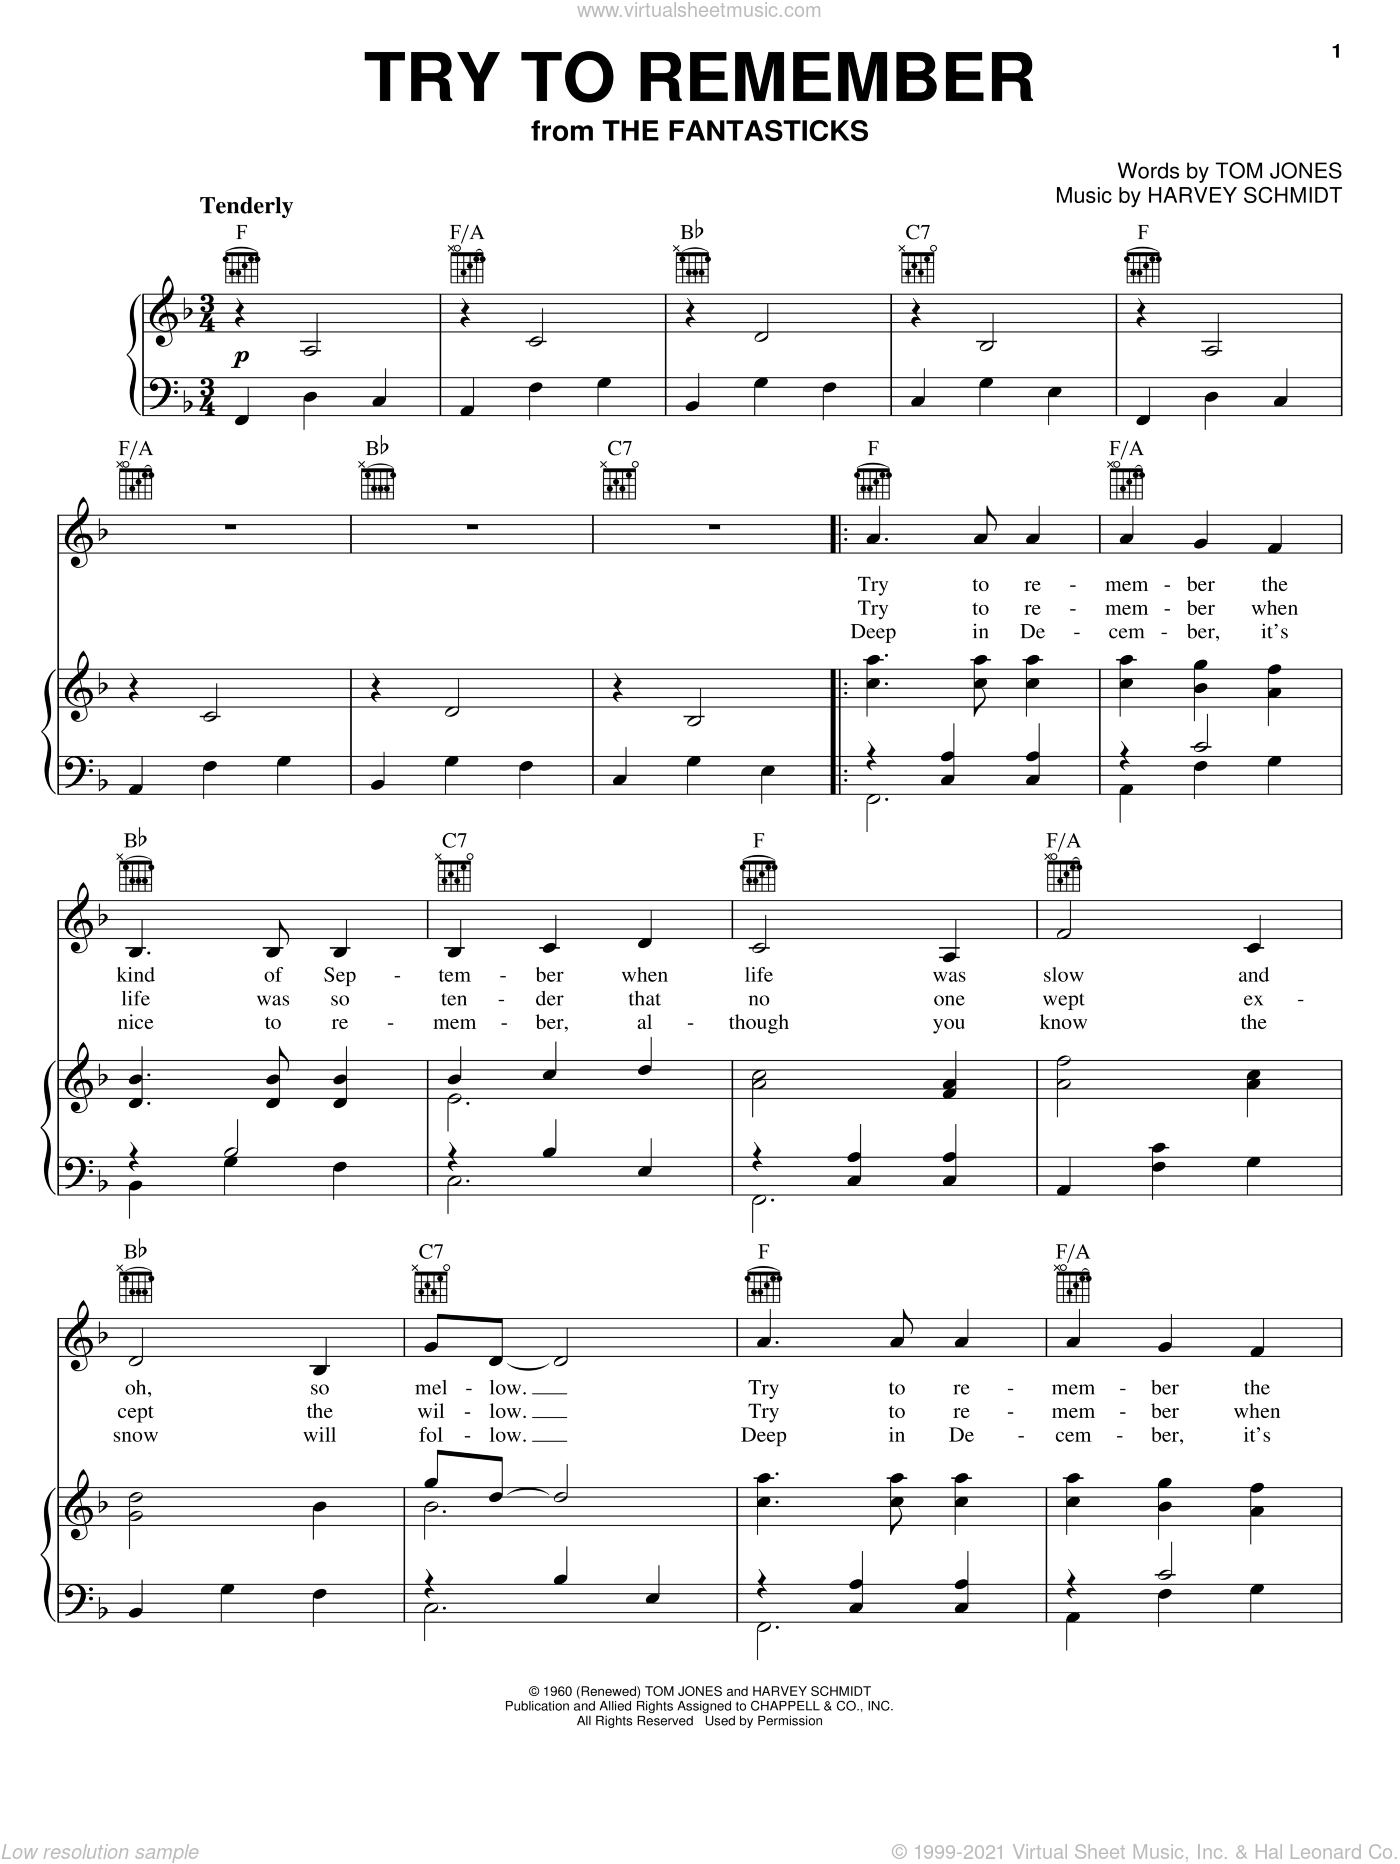 Try To Remember sheet music for voice, piano or guitar by Tom Jones